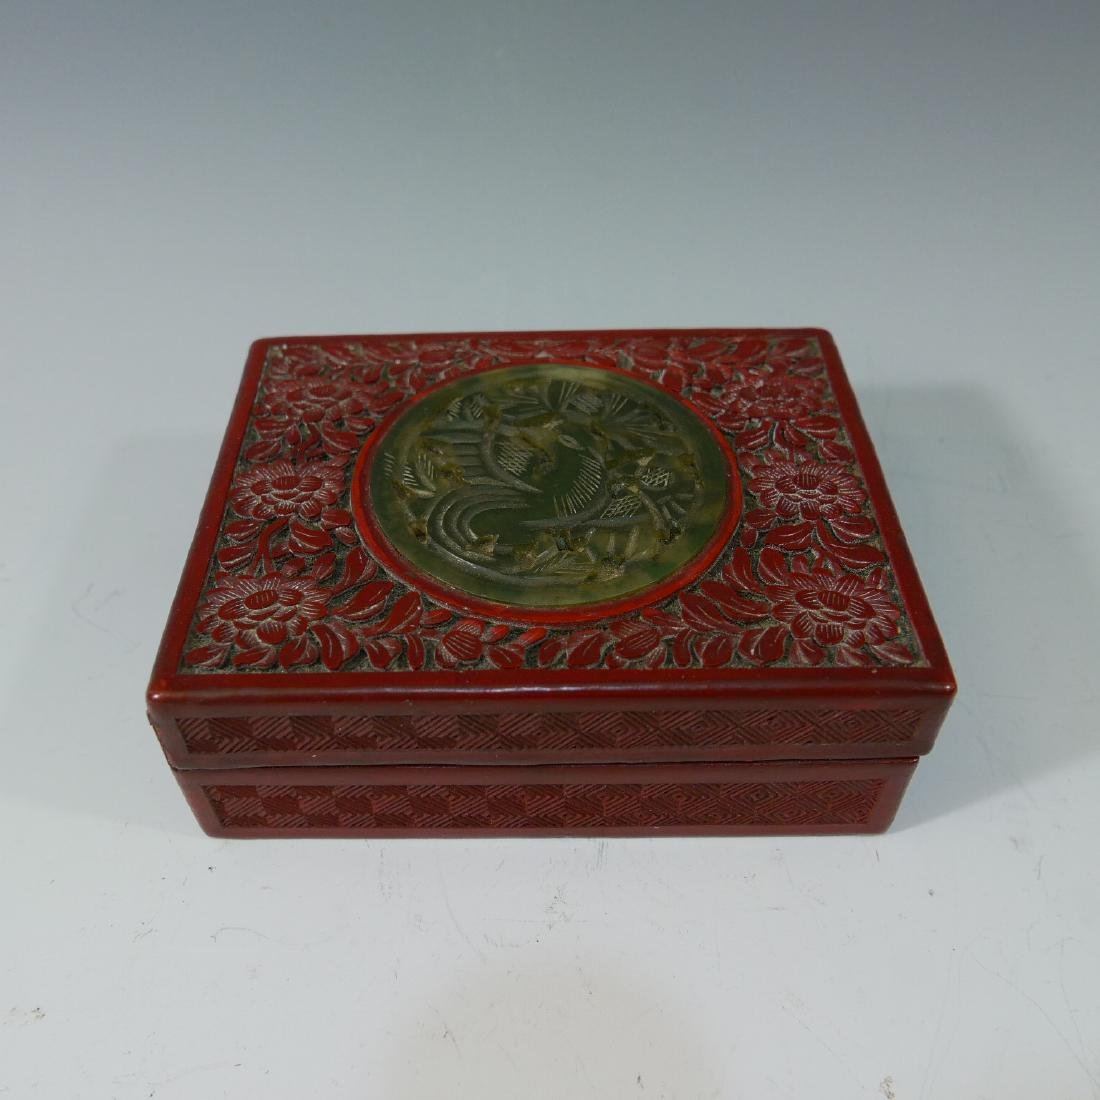 CHINESE ANTIQUE CARVED LACQUER CINNABAR BOX - 19TH